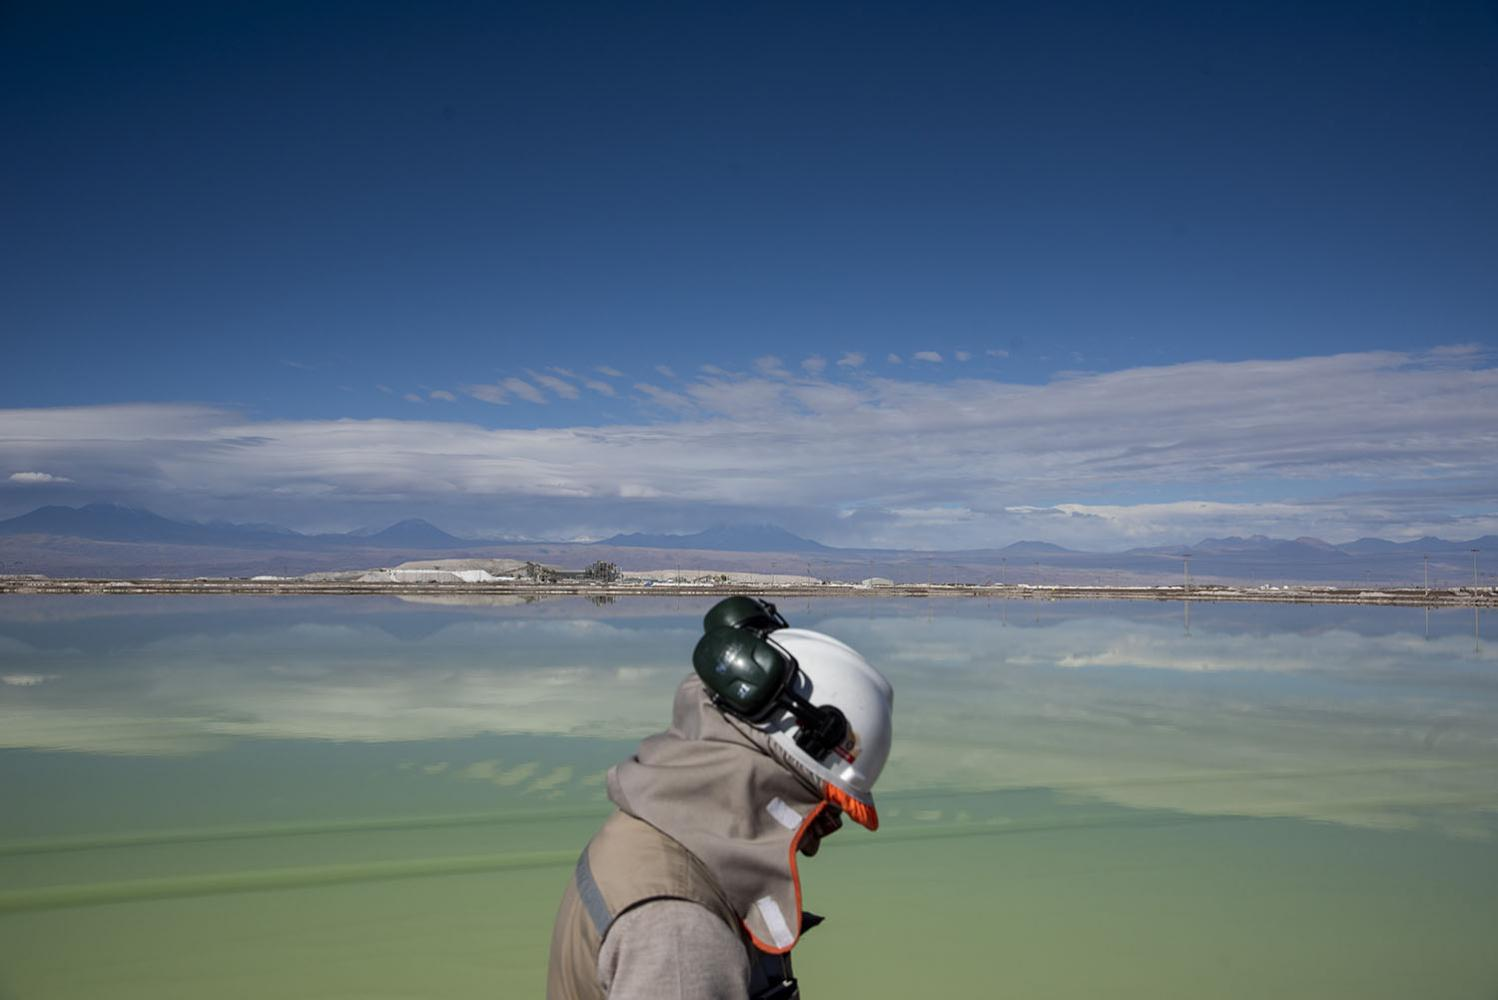 Pool of brine in Atacama desert Sociedad Química Minera Plant. There are dozens of pools containing different stages of brine and lithium at this plant, depending at the stage they are the color may vary. Atacama Region. May 29th, 2019.